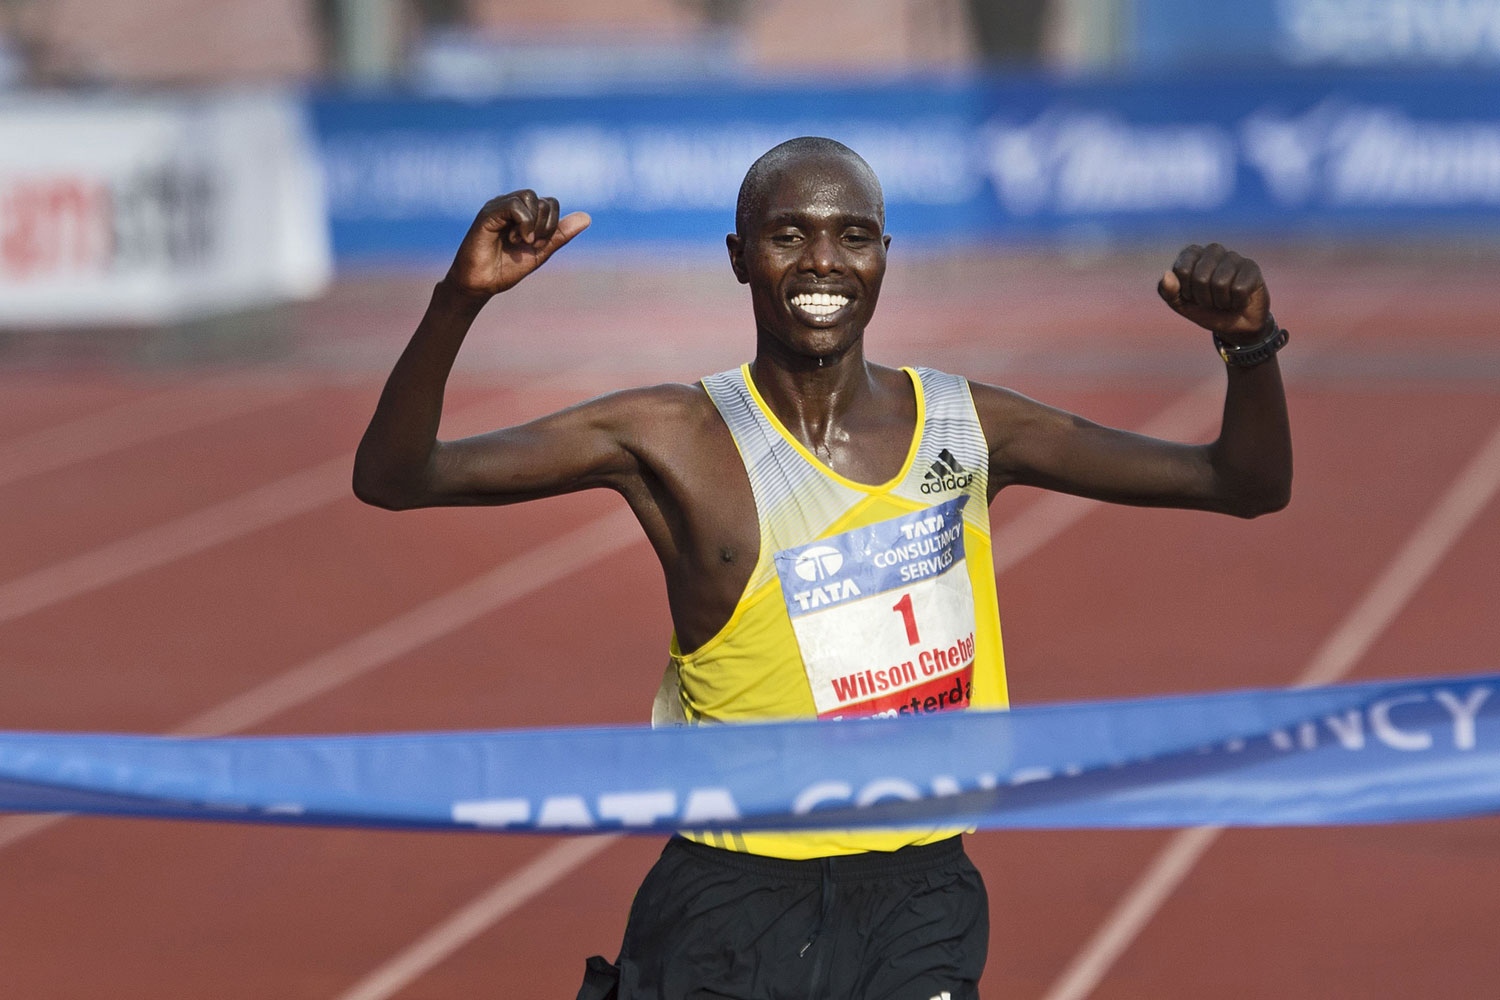 Wilson Chebet celebrates as he crosses the finish line to win the Marathon of Amsterdam on October 20, 2013.